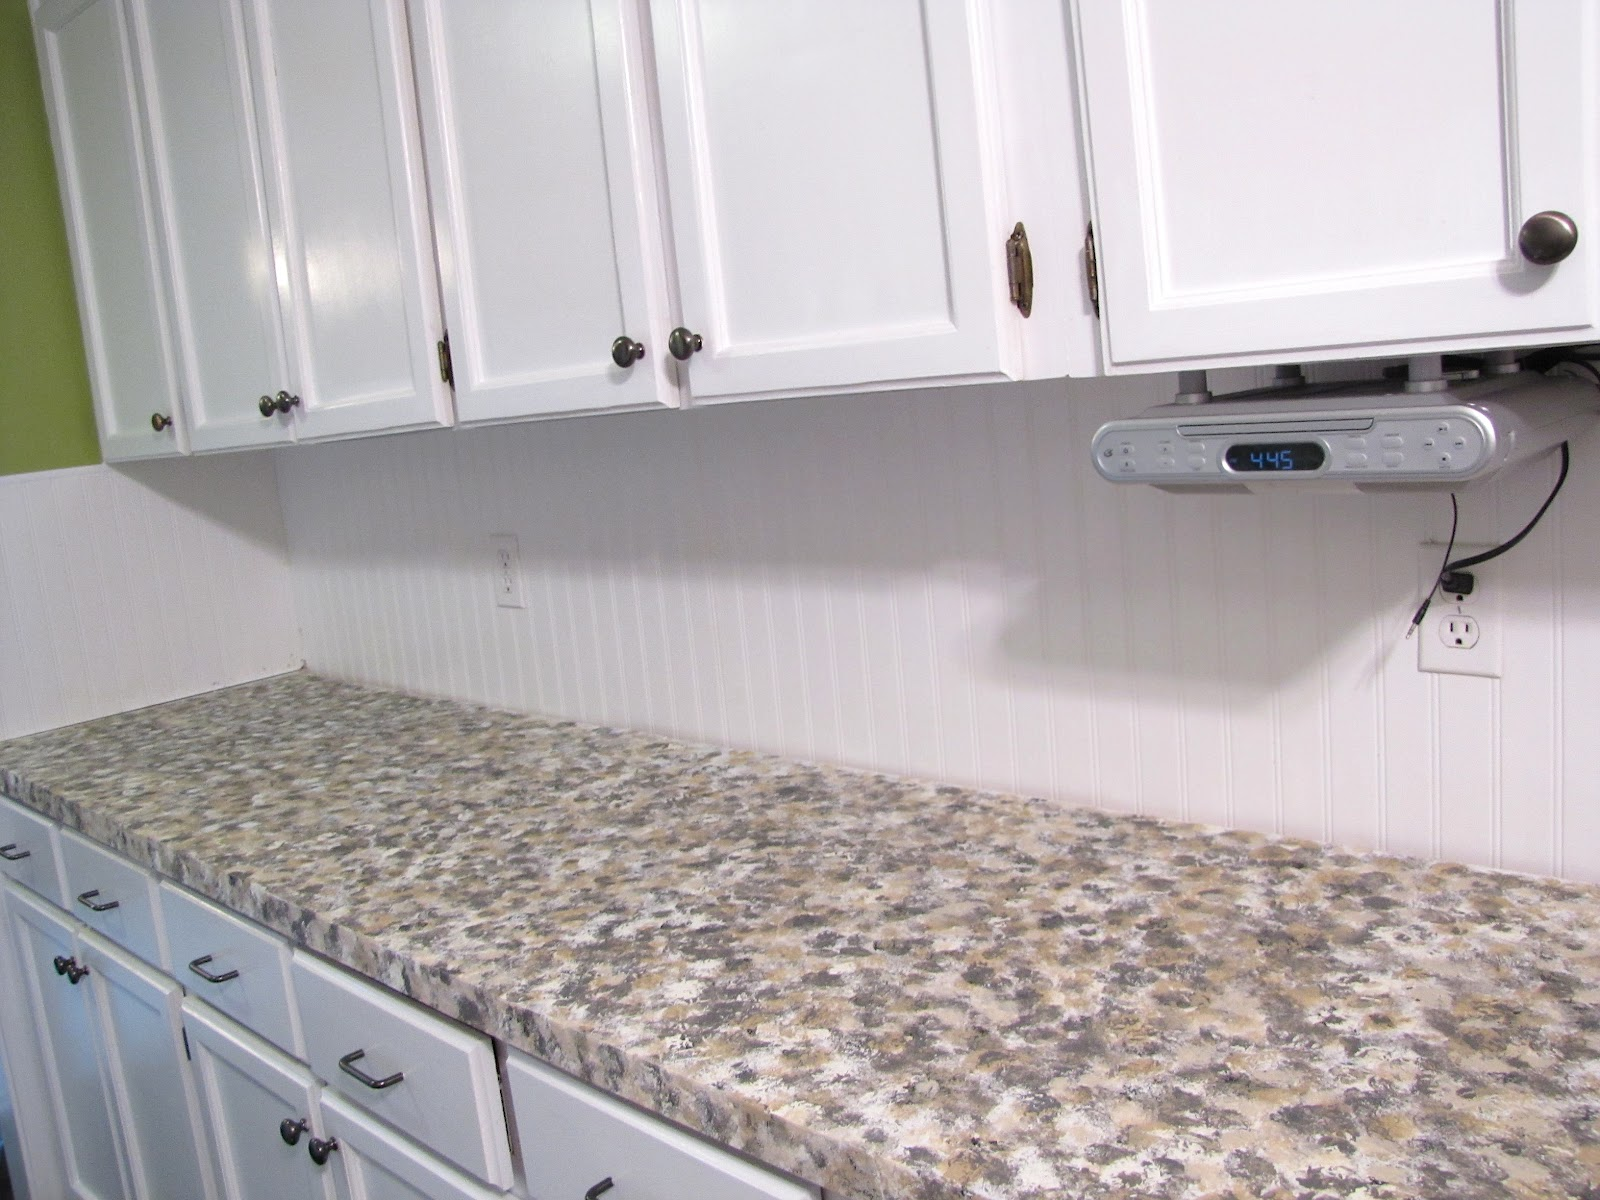 Rustoleum Countertop Paint Application : The Modest Homestead: Kitchen Update: Faux Granite Countertops